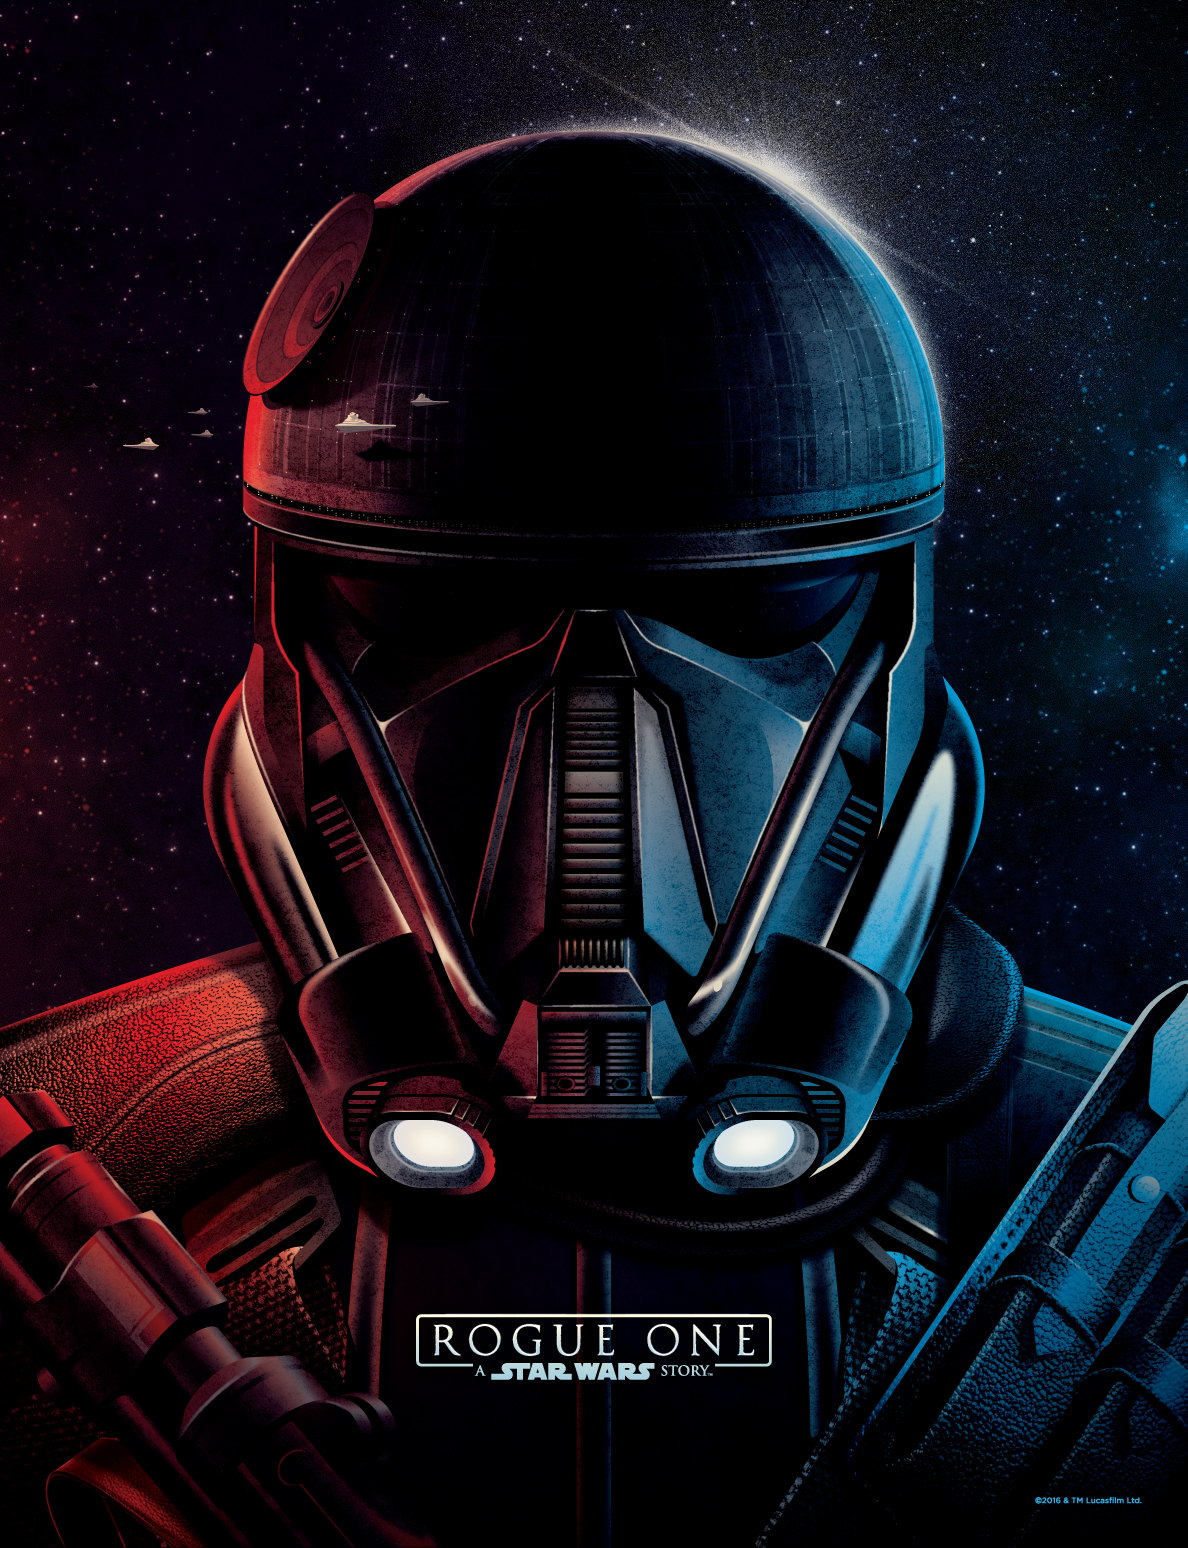 Rogue+One+by+DKNG.jpg